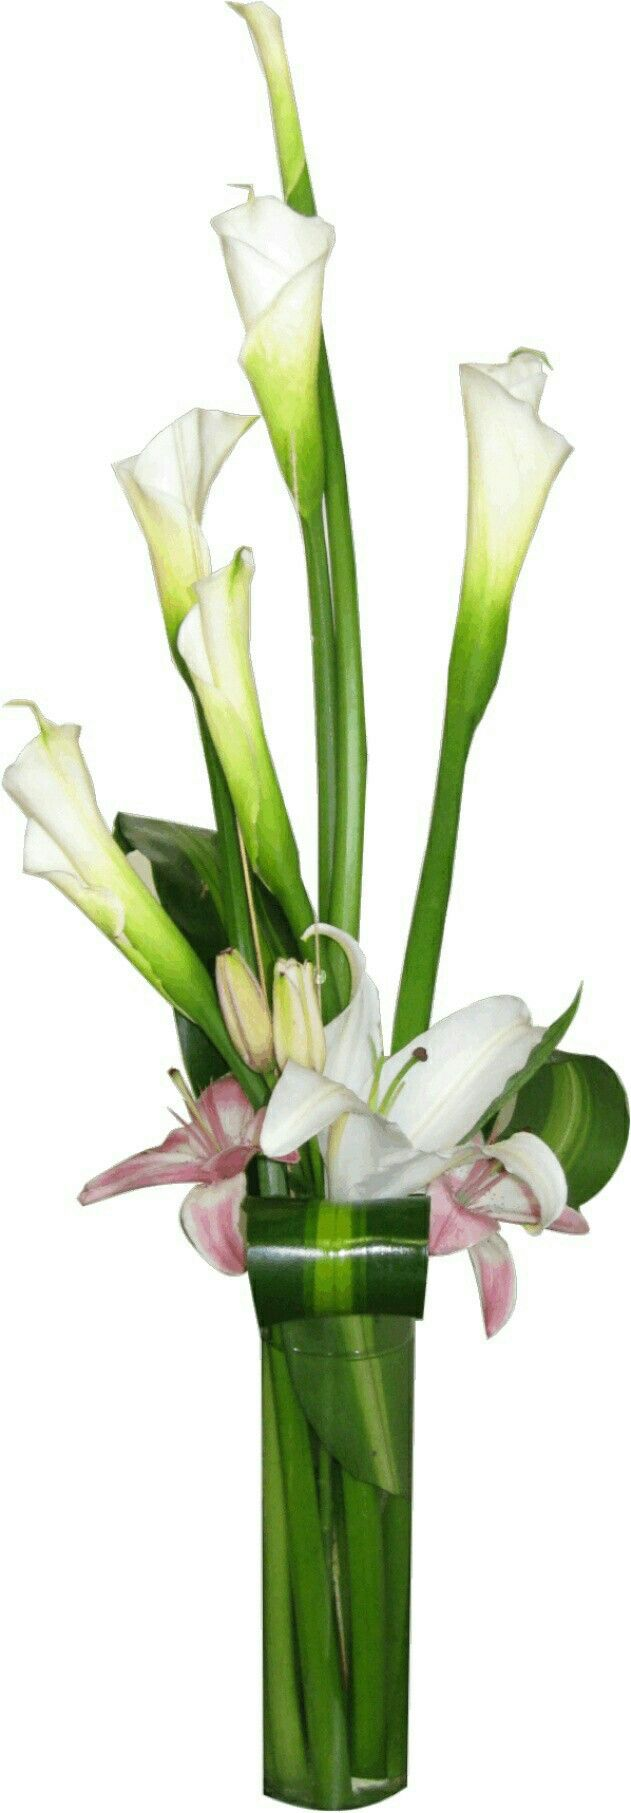 best calla lilies images on pinterest calla lilies calla lily